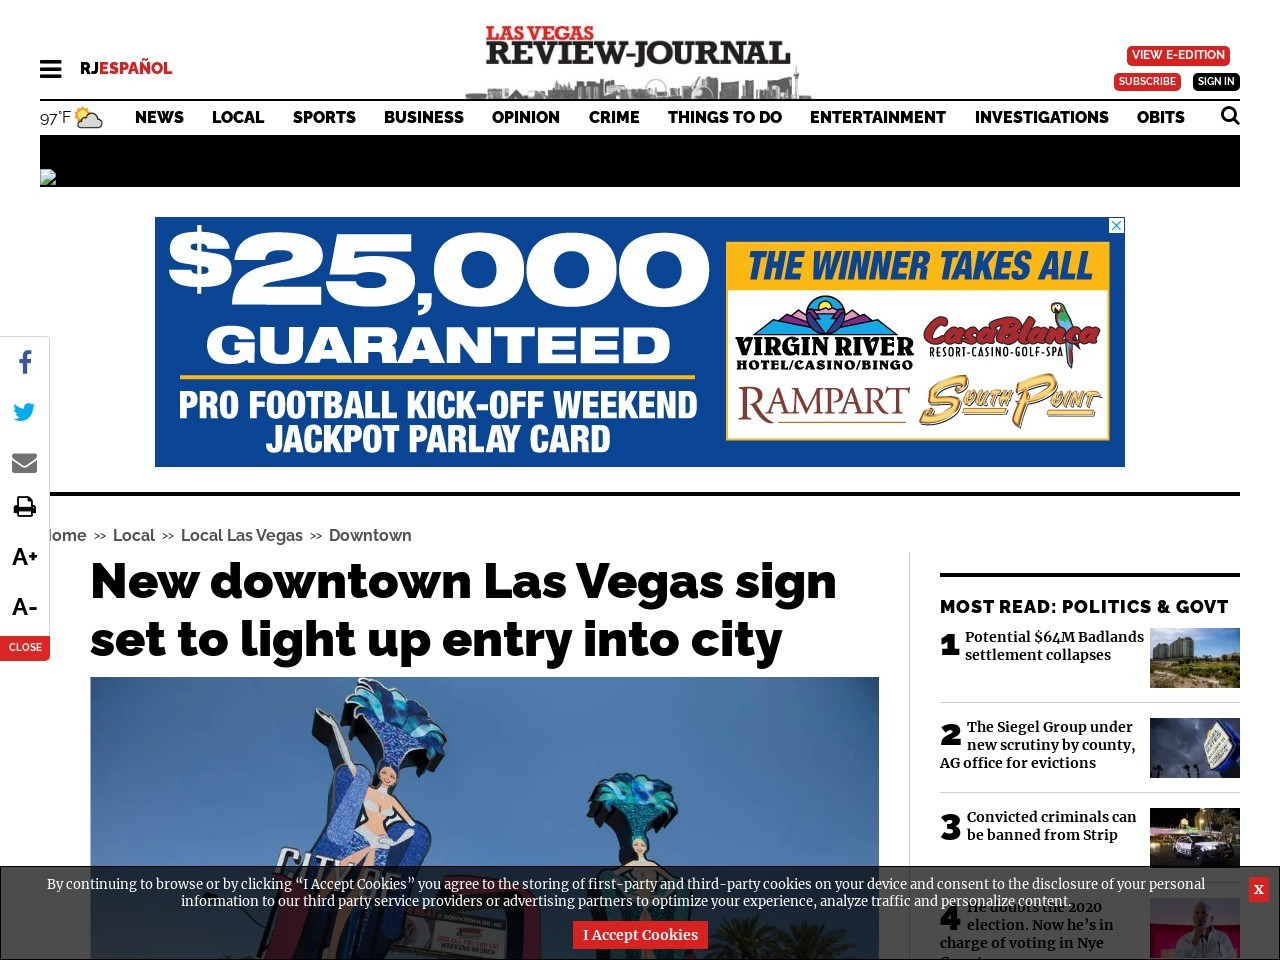 New downtown Las Vegas sign set to light up entry into city